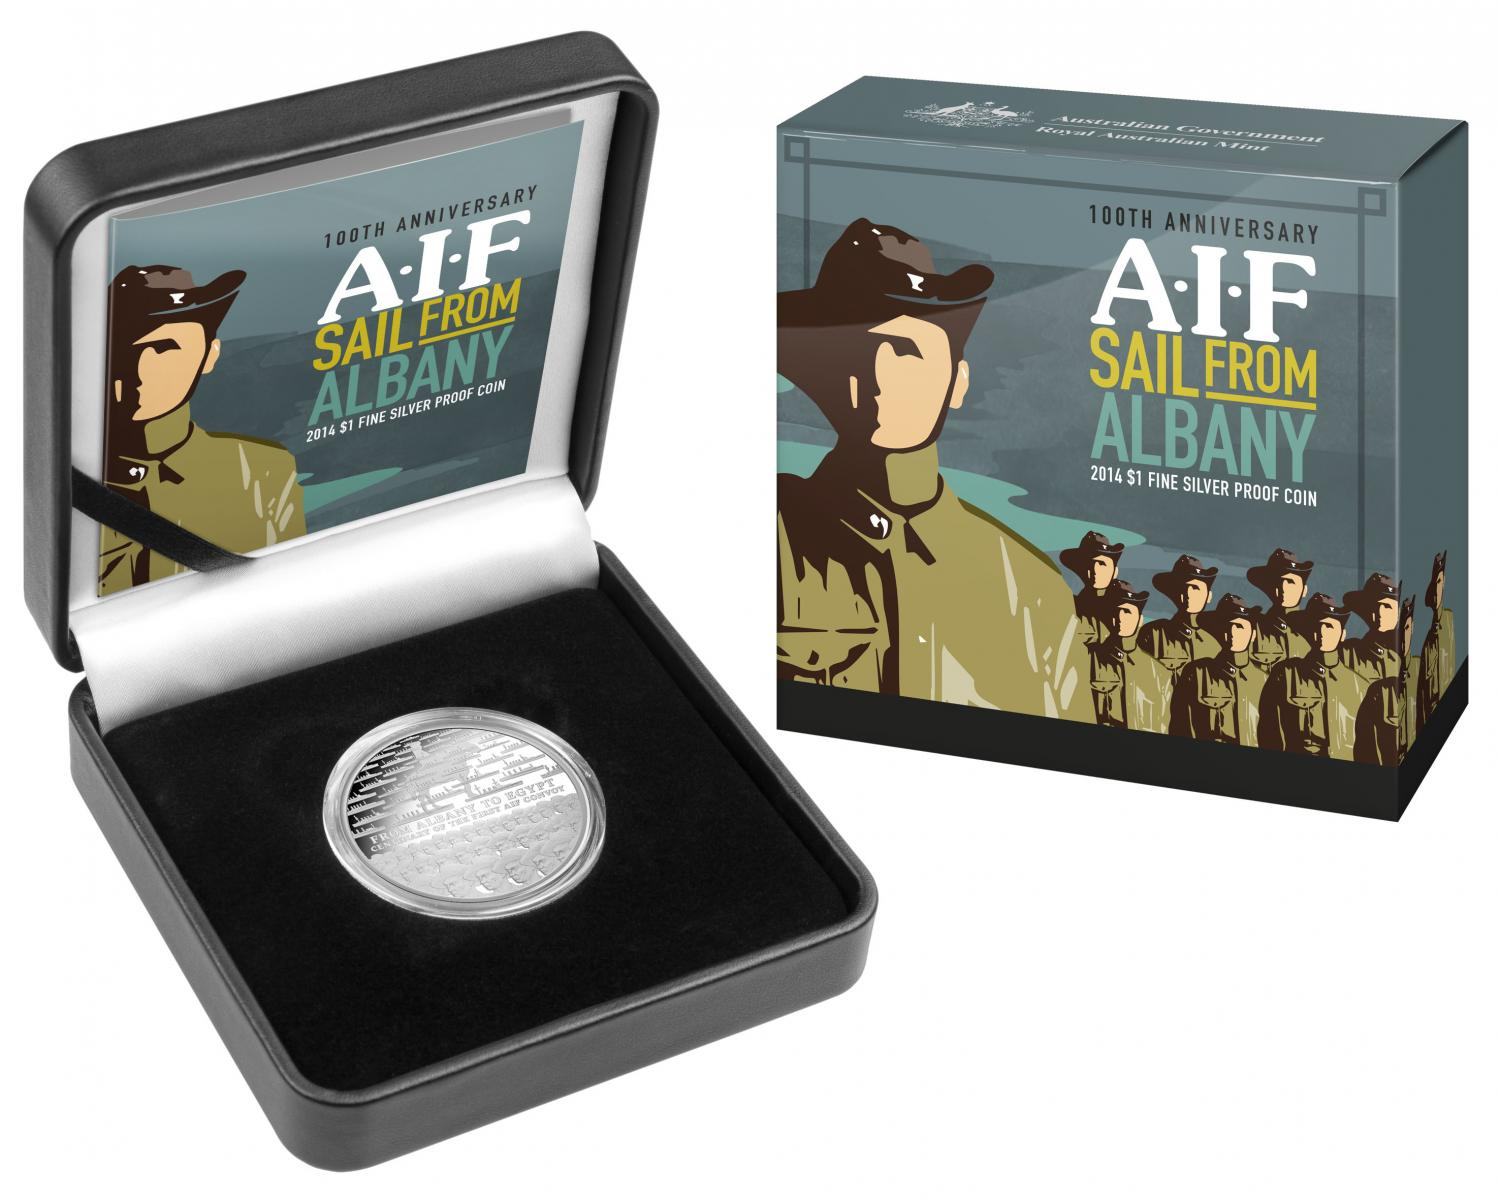 Thumbnail for 2014 100th Anniversary A.I.F Sail from Albany $1.00 1oz Silver Proof Coin